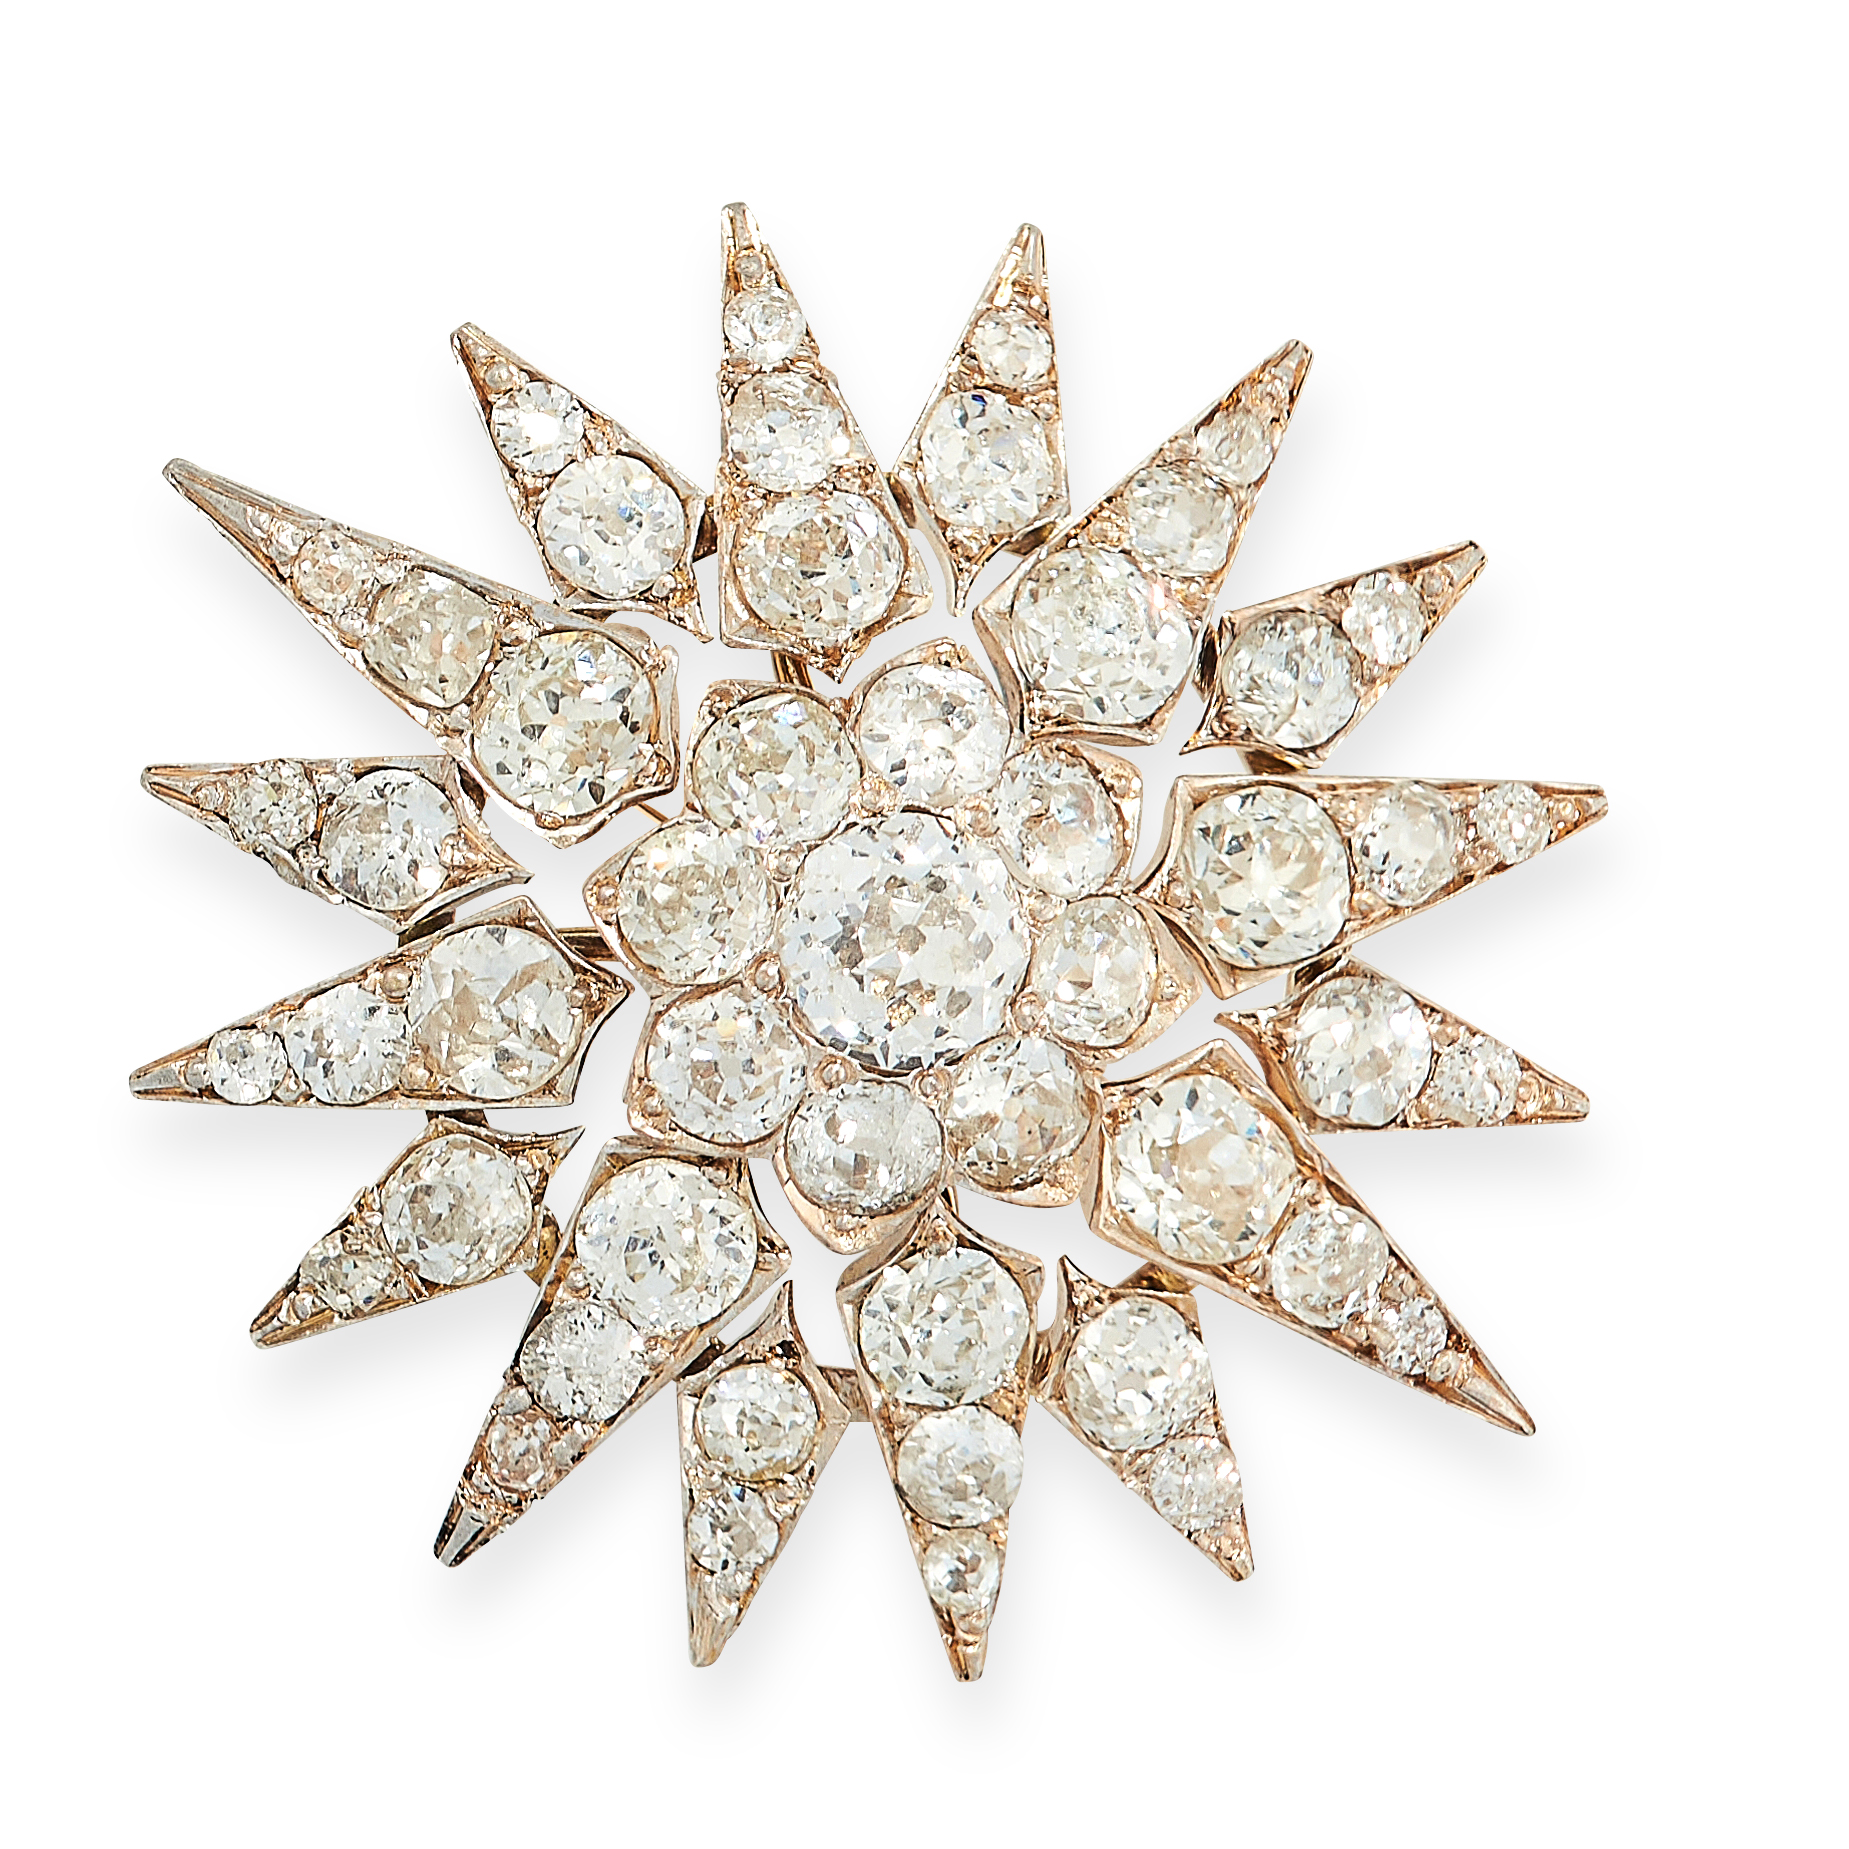 ANTIQUE DIAMOND STAR BROOCH, 19TH CENTURY in yellow gold and silver, in the form of a star burst set